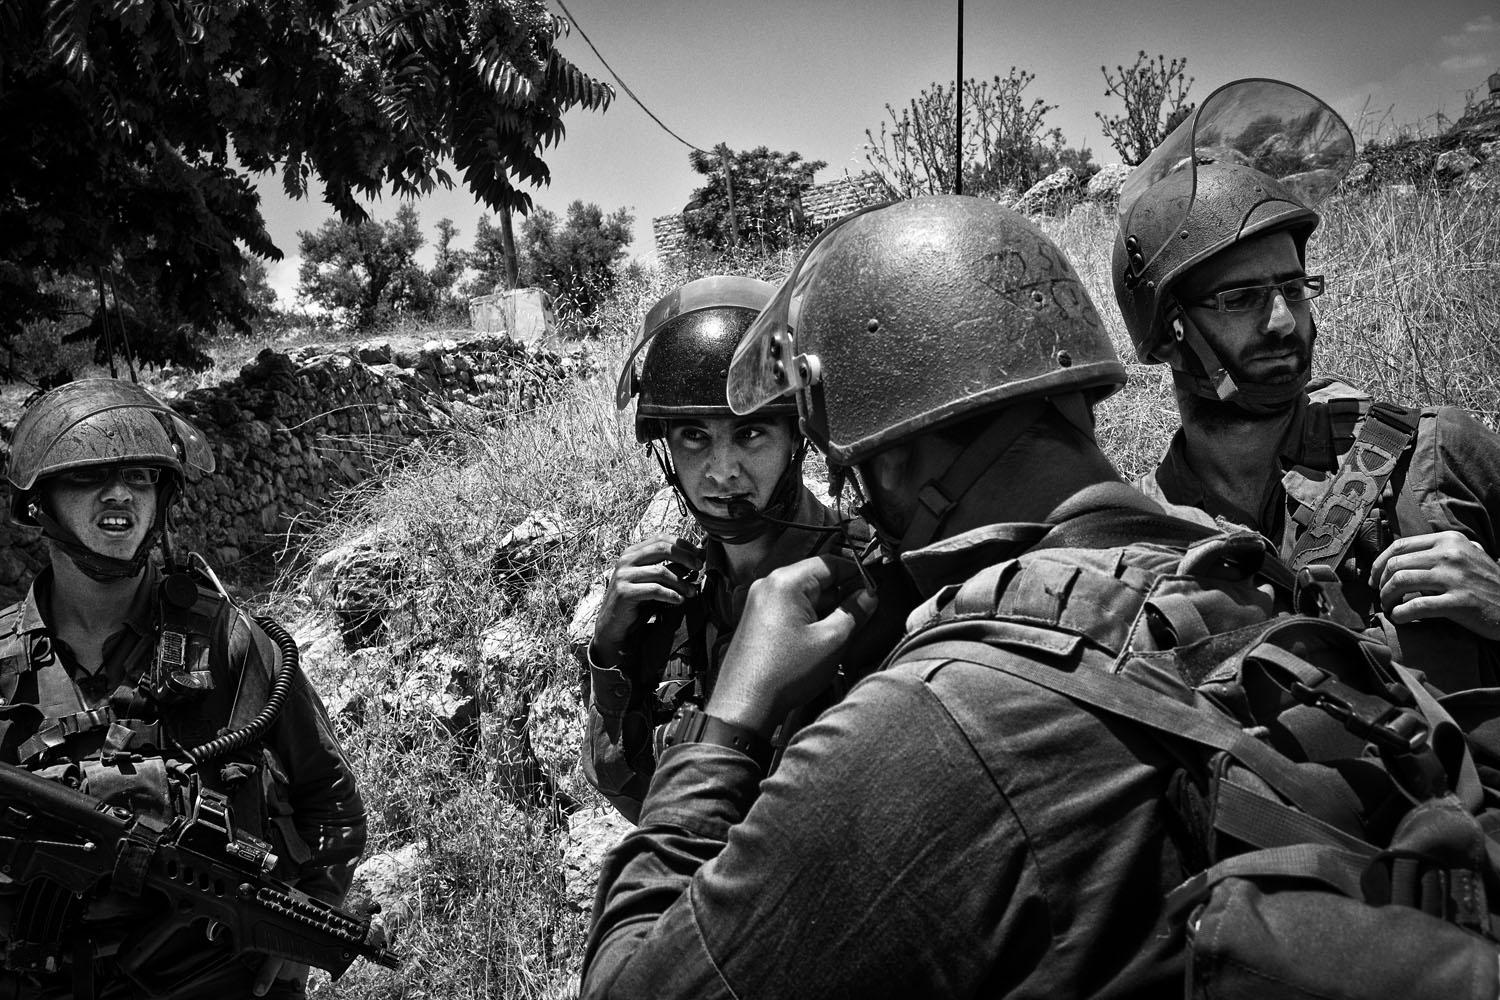 Soldiers patrolling in the West Bank, June 10, 2013.